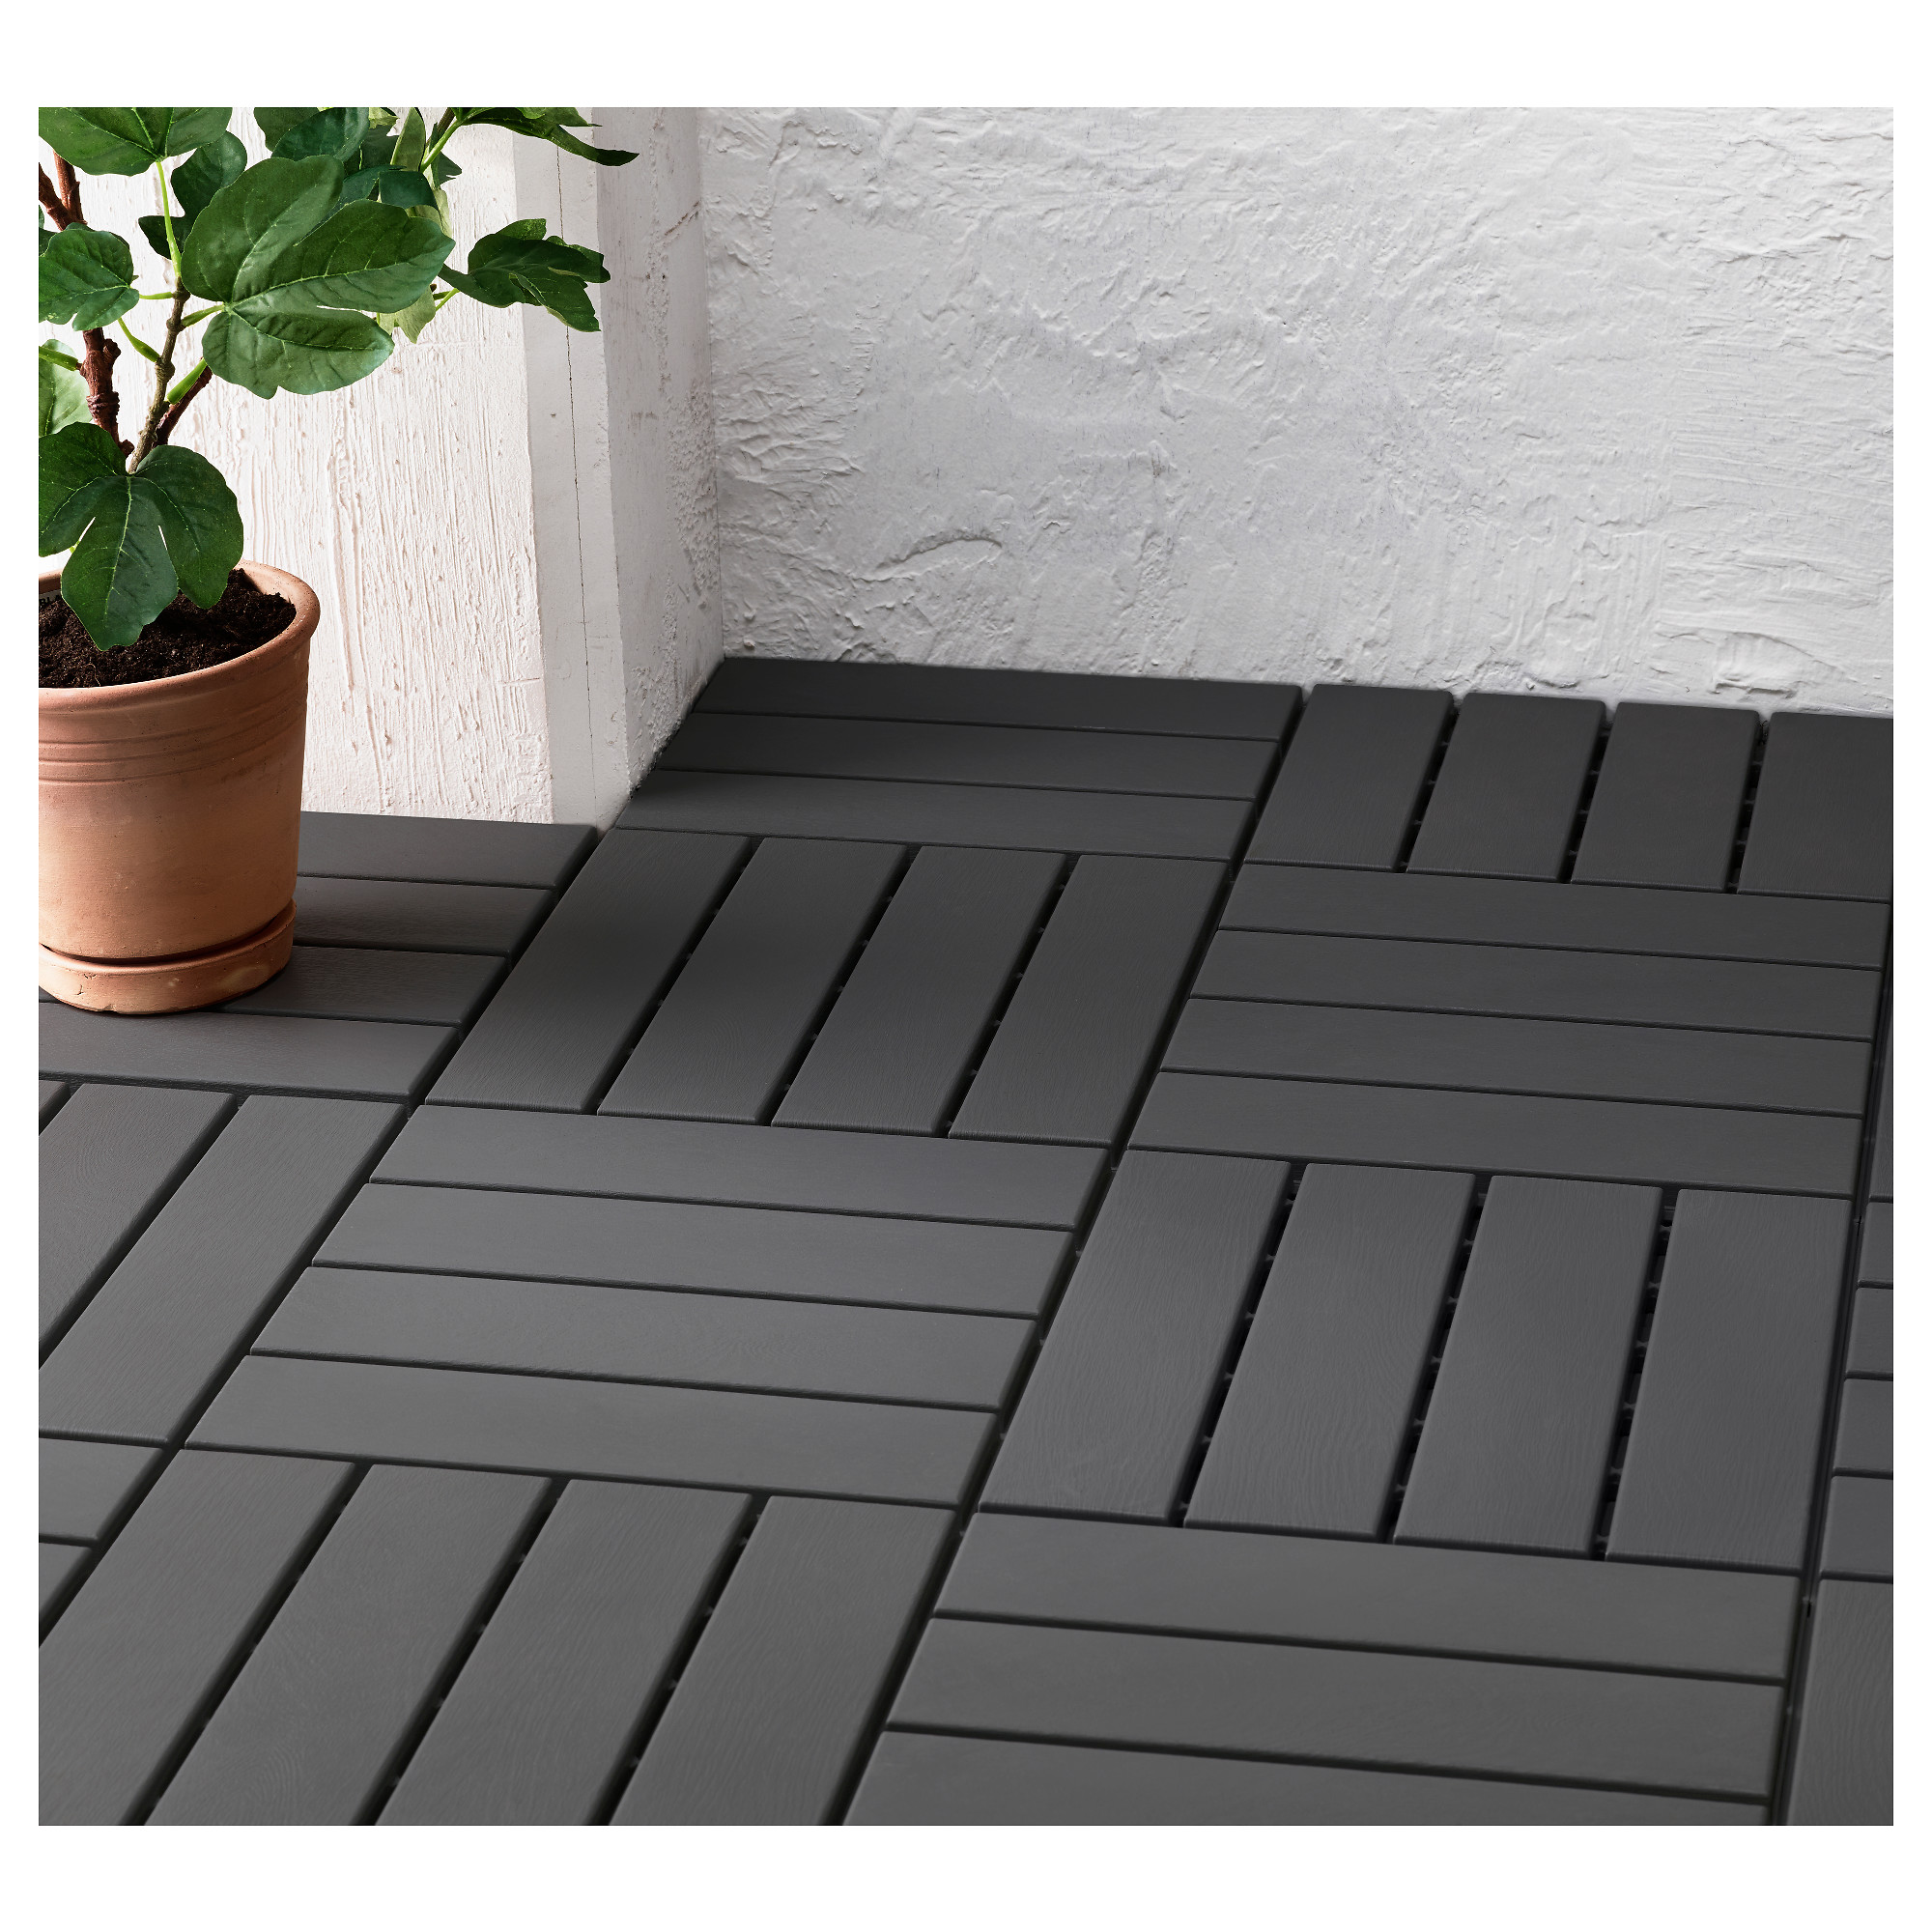 Runnen Floor Decking Ikea Latvia Shop For Furniture Lighting Home Accessories More